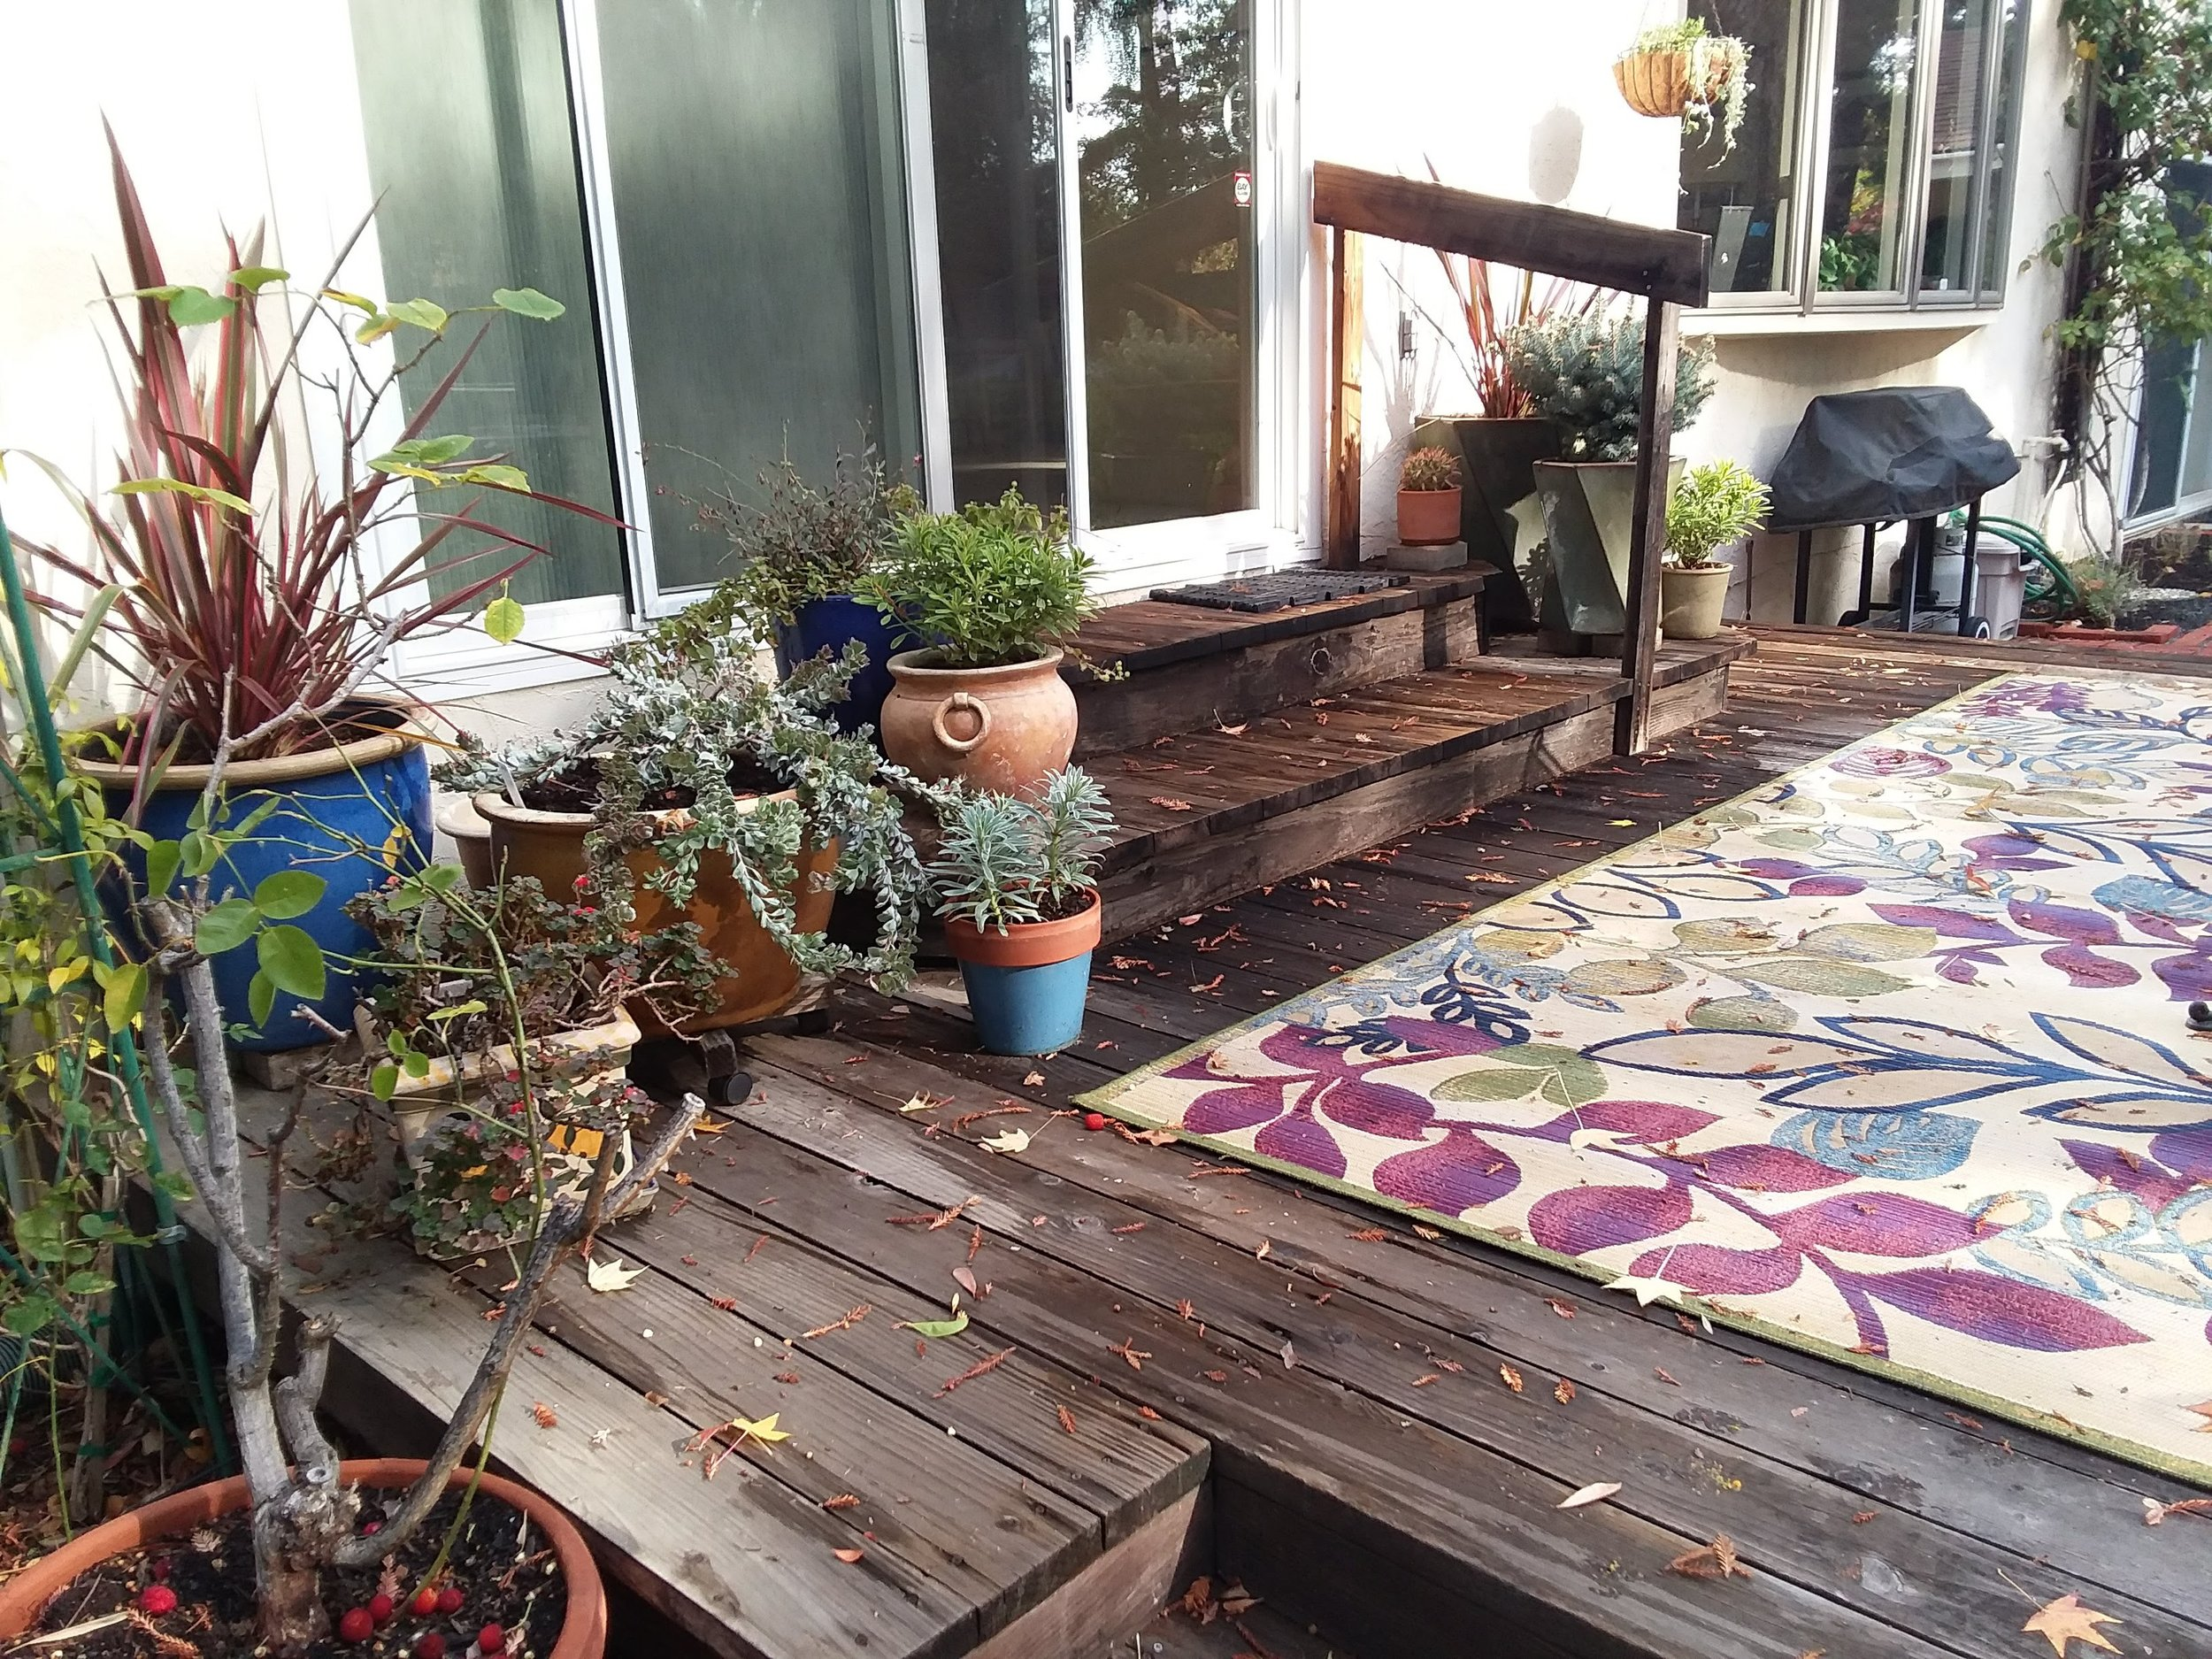 M'lou's back patio on Mon., Nov. 26, 2018 showing deck pots and area rug -1.jpg